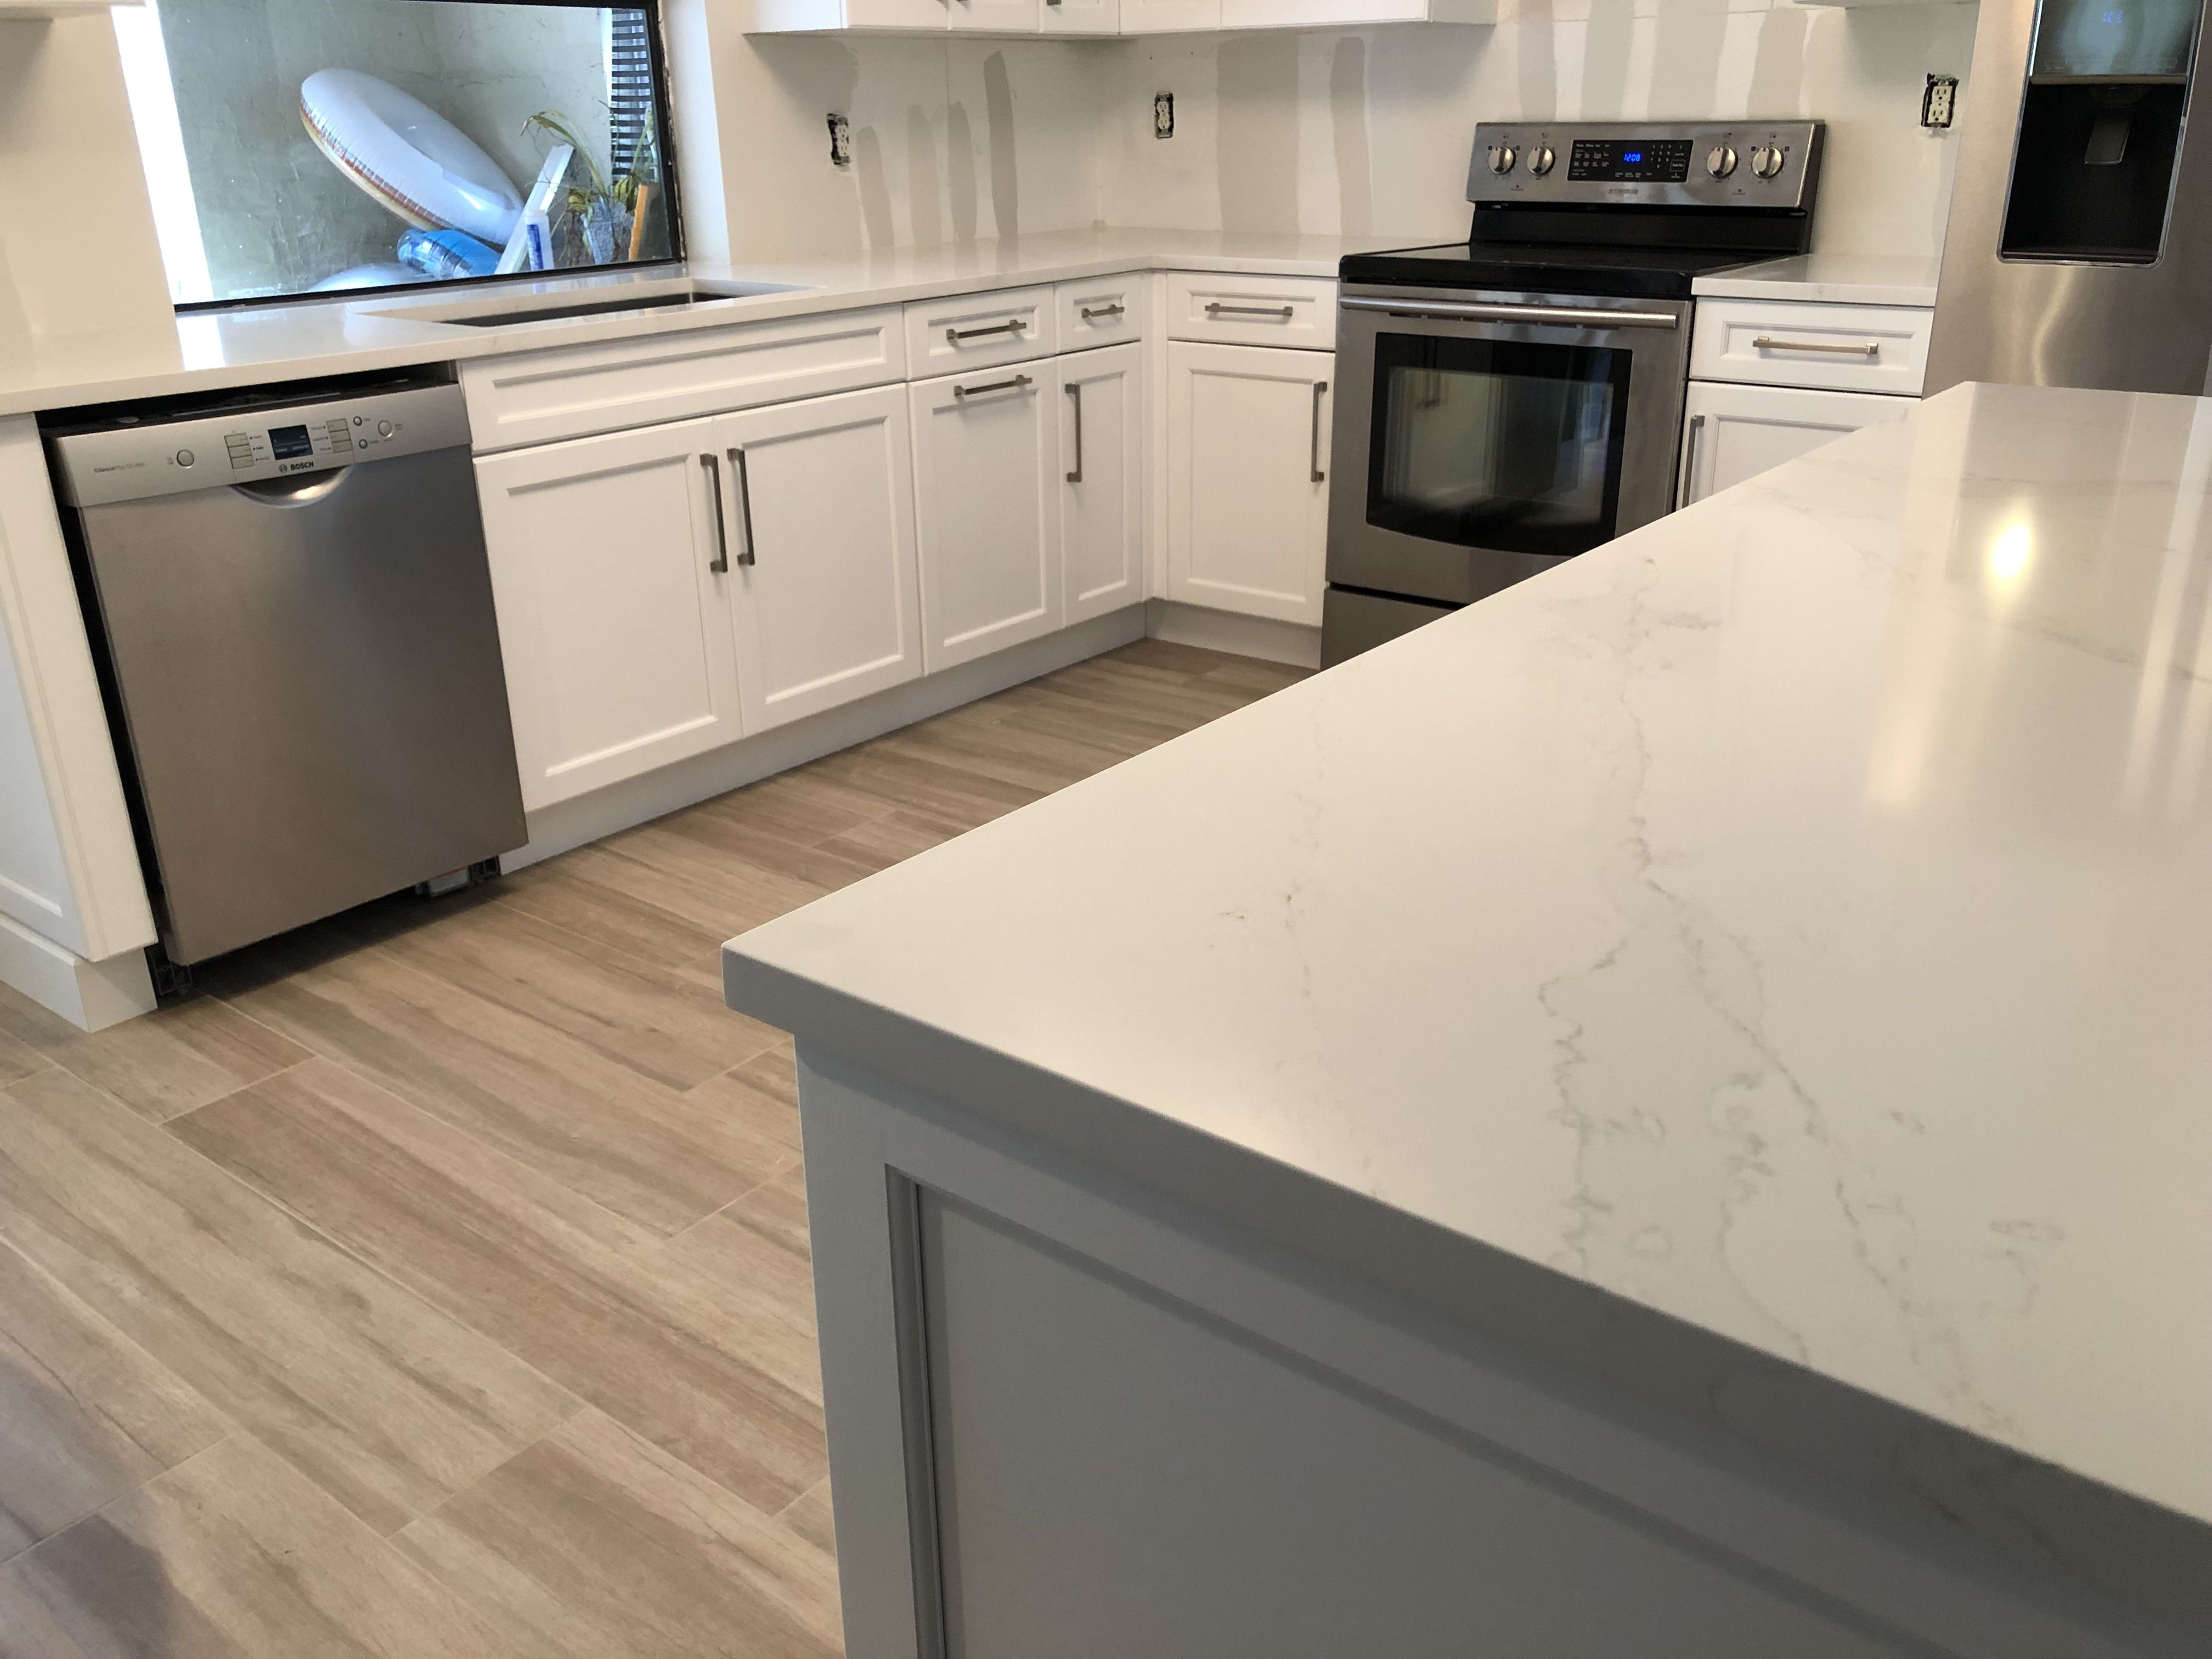 Silestone Calacatta Gold Kitchen Countertops Calacatta Gold